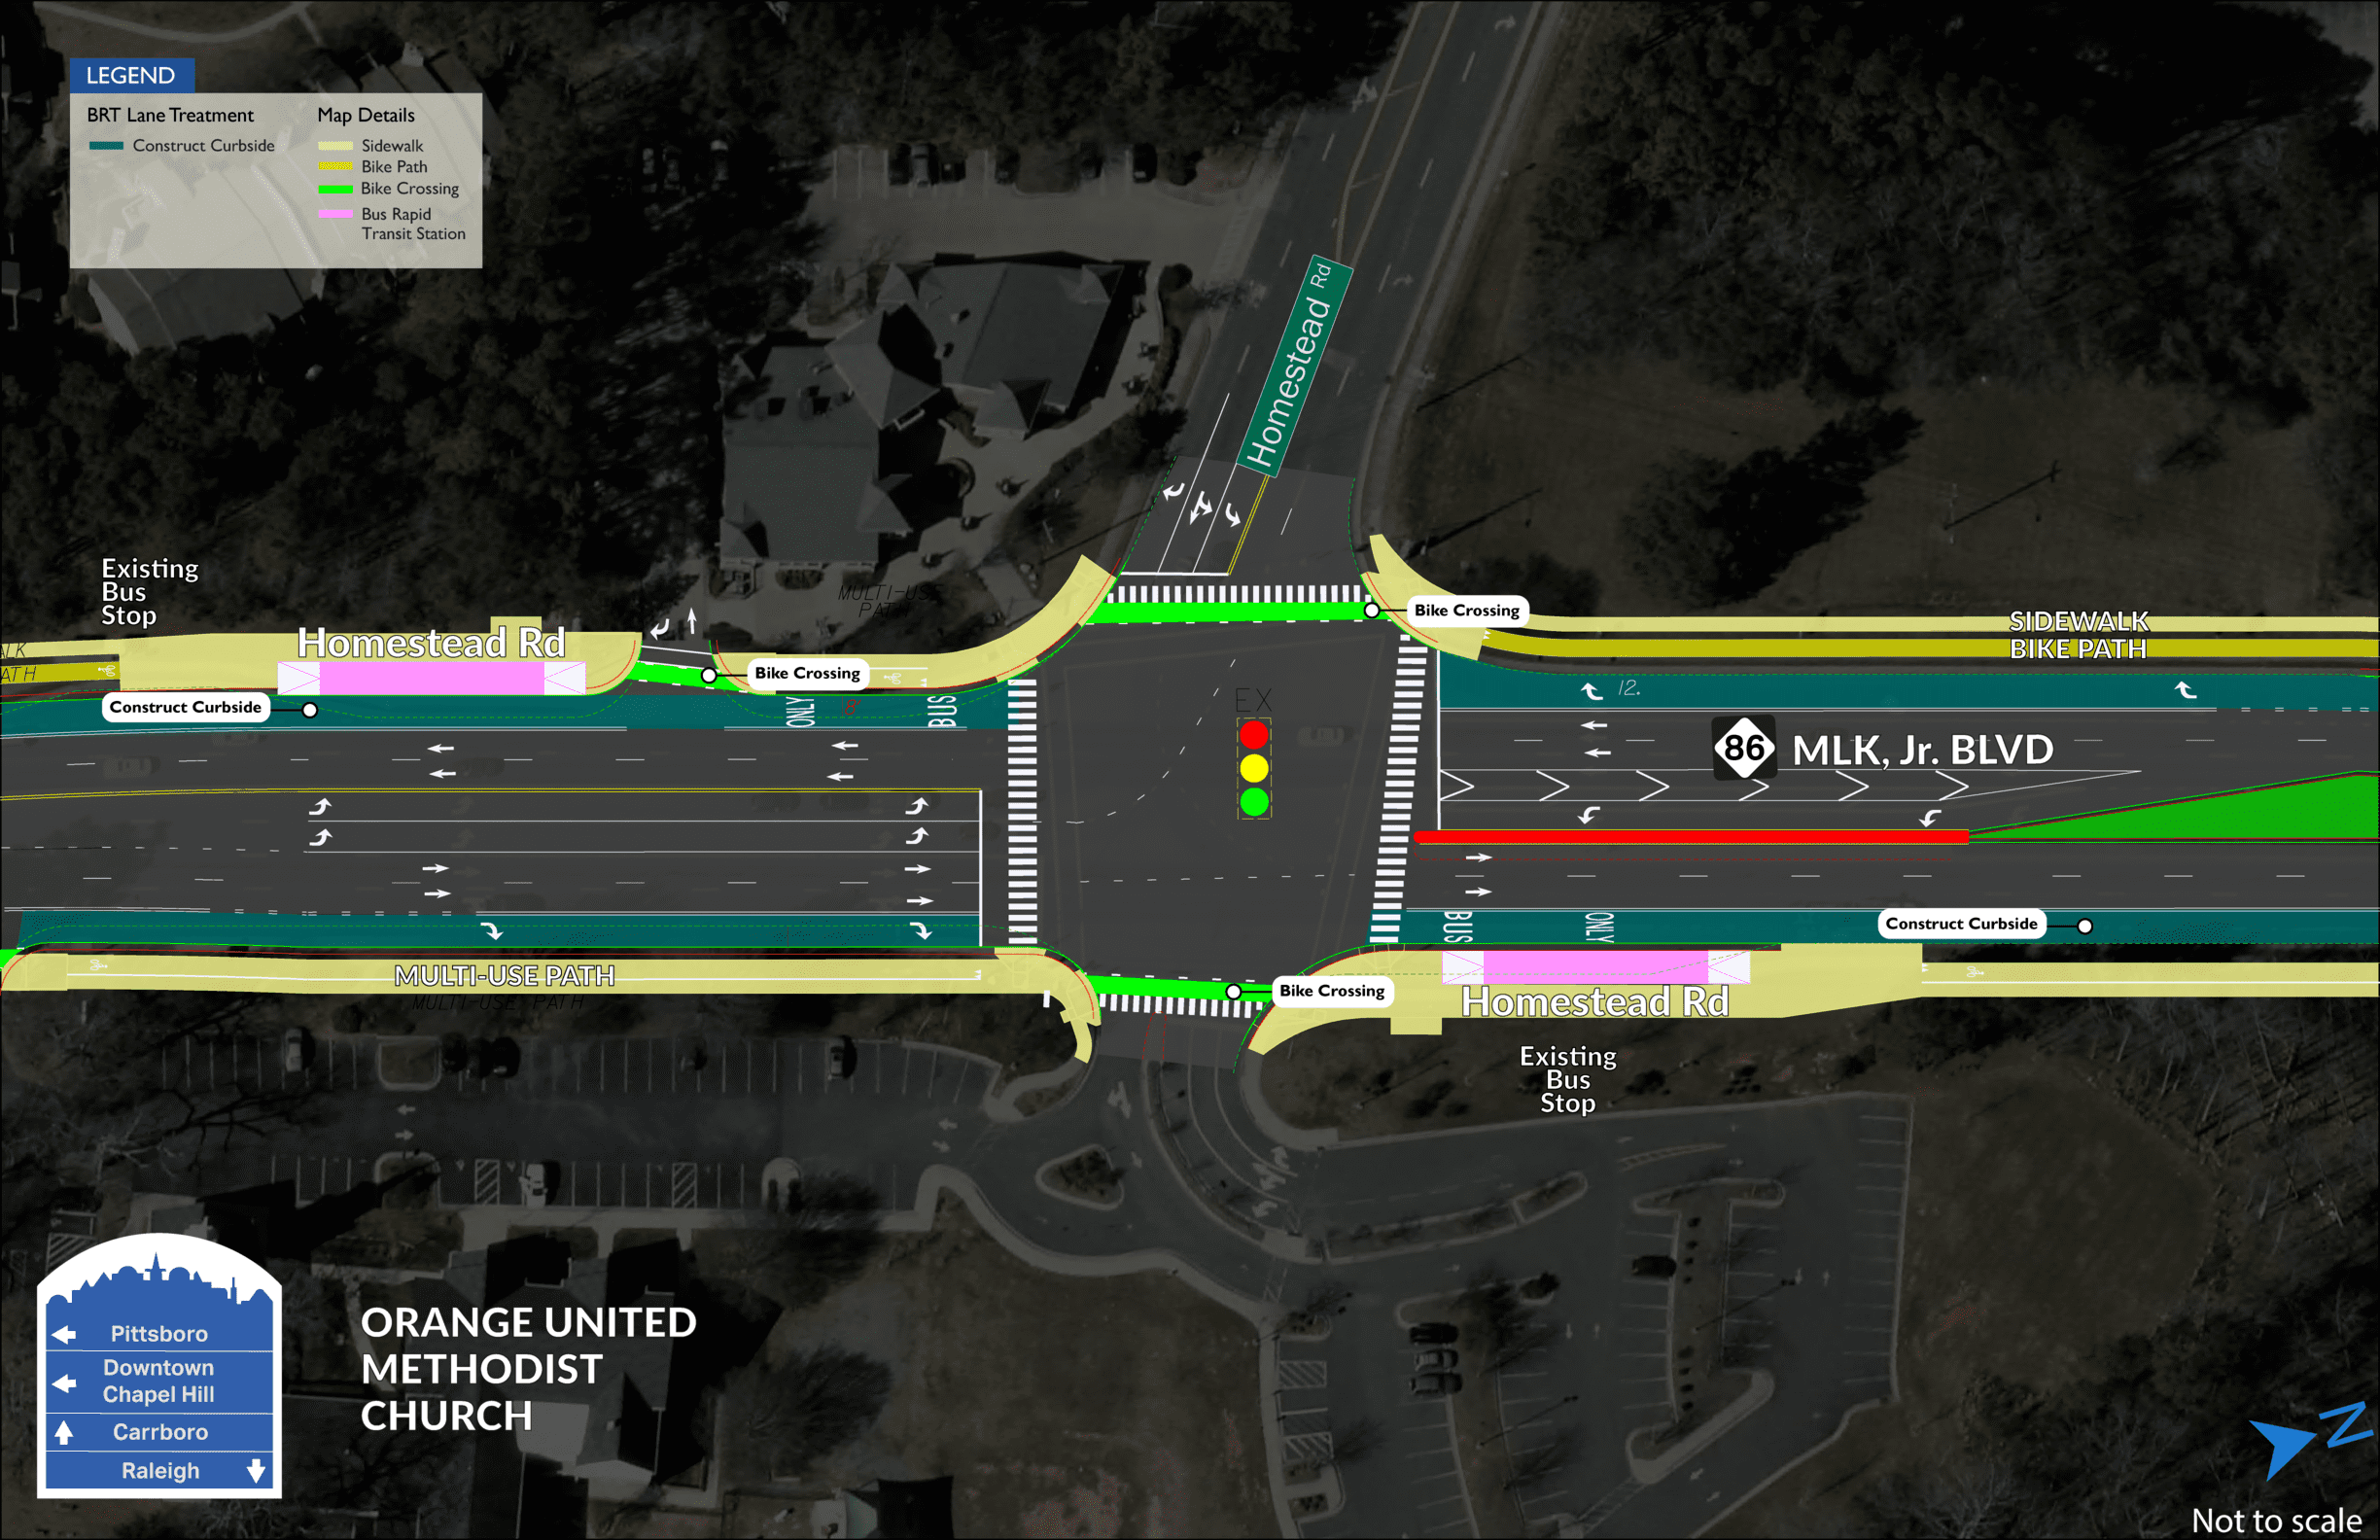 Homestead BRT map showing two stations on both sides of MLK Jr. Boulevard, divided by Homestead Road.